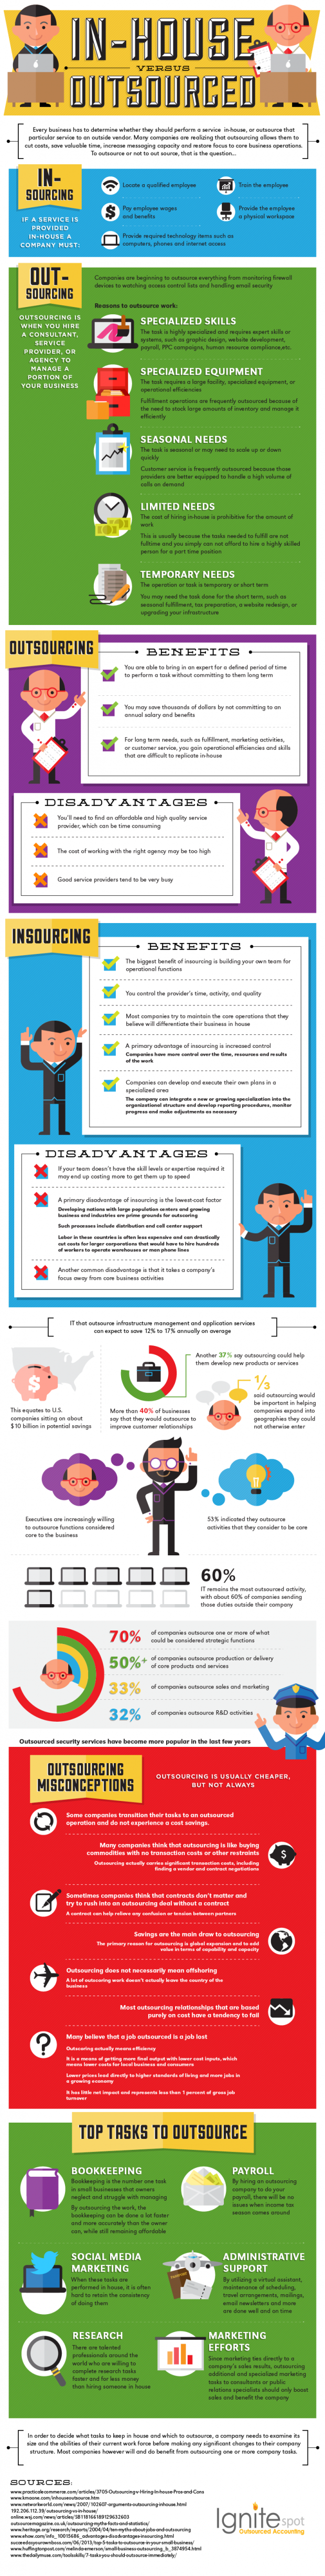 Benefits-of-Outsourching-For-Your-Business-Infographic